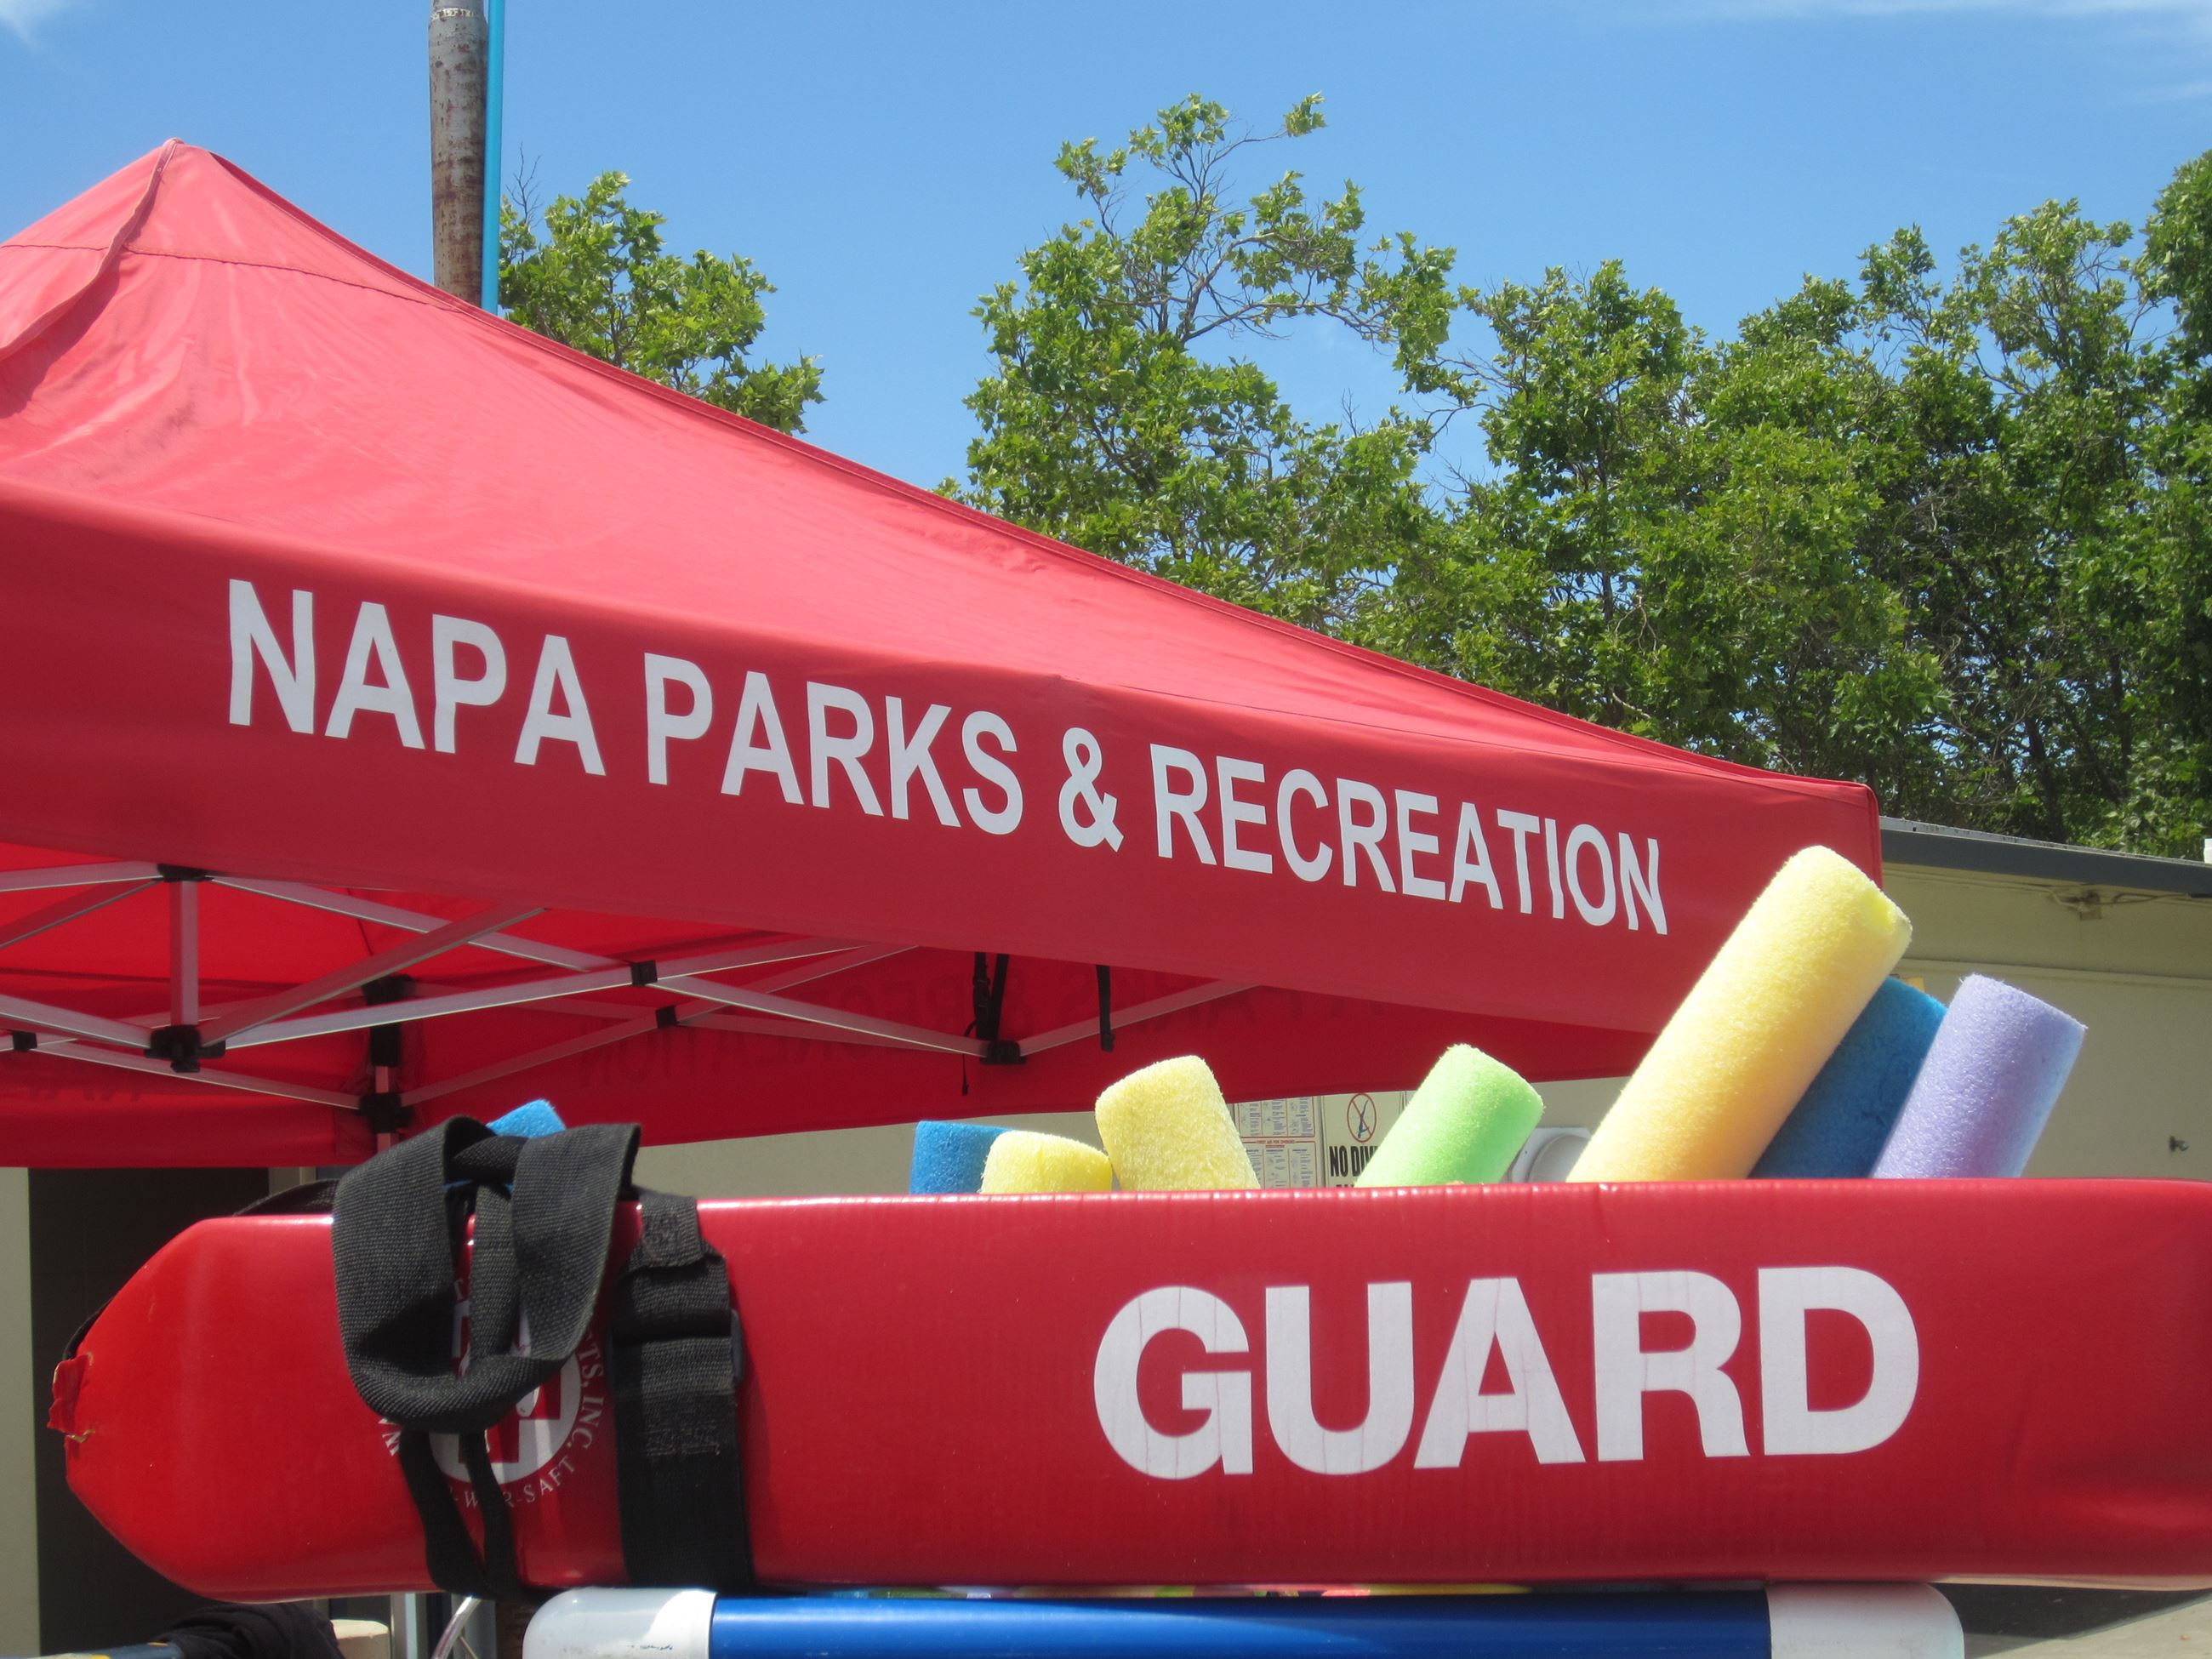 Napa Parks & Recreation - Lifeguard